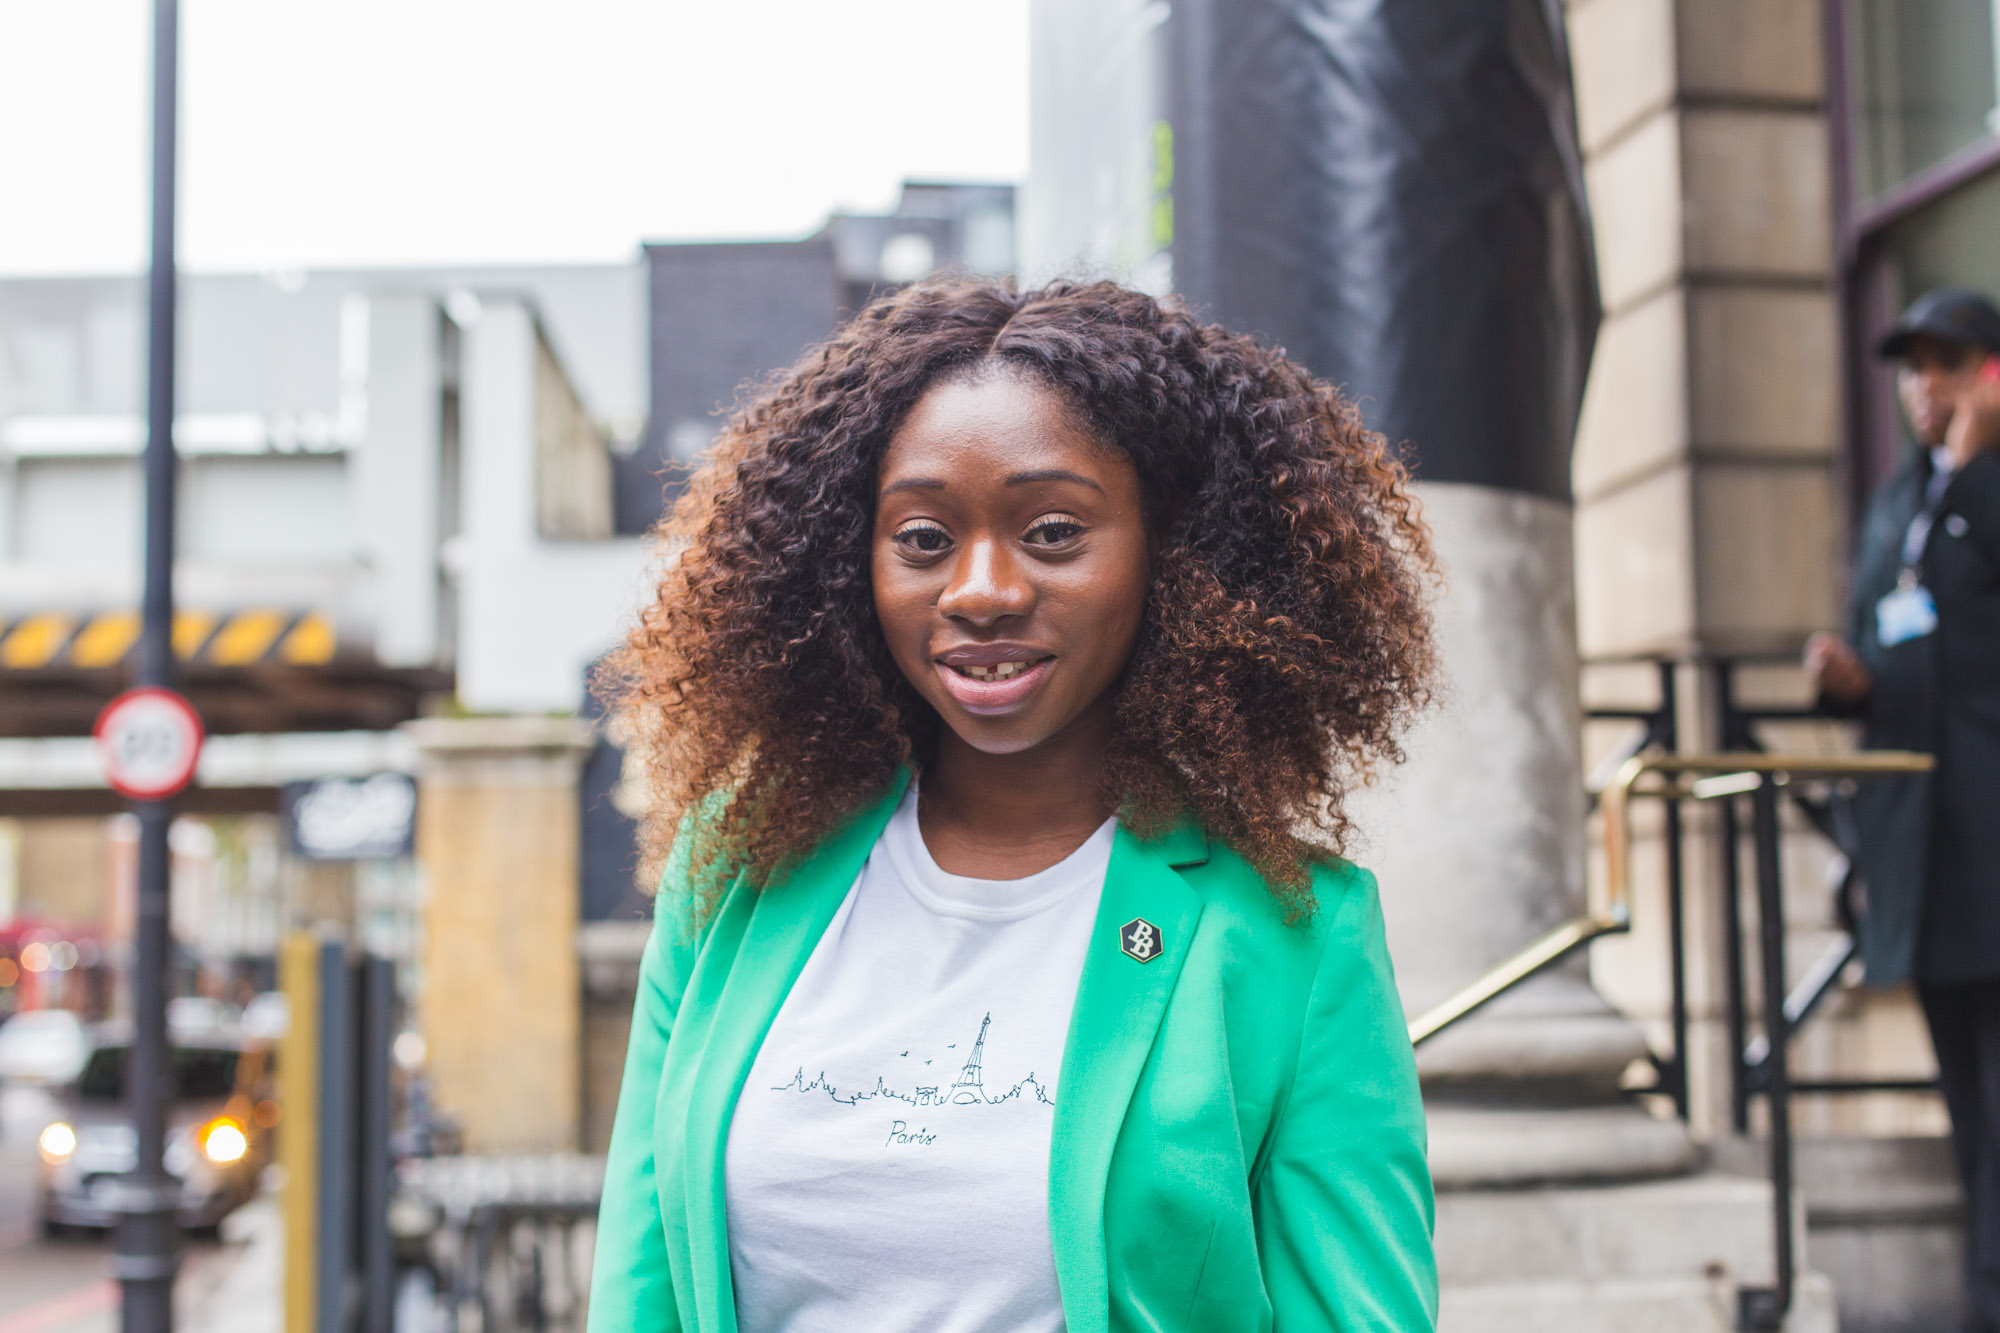 What is it really like starting a media company from your bedroom? I interviewed Black Ballad founder Tobi Oredin about getting started in journalism, crowdfunding and why it's important to have different platforms for black women.